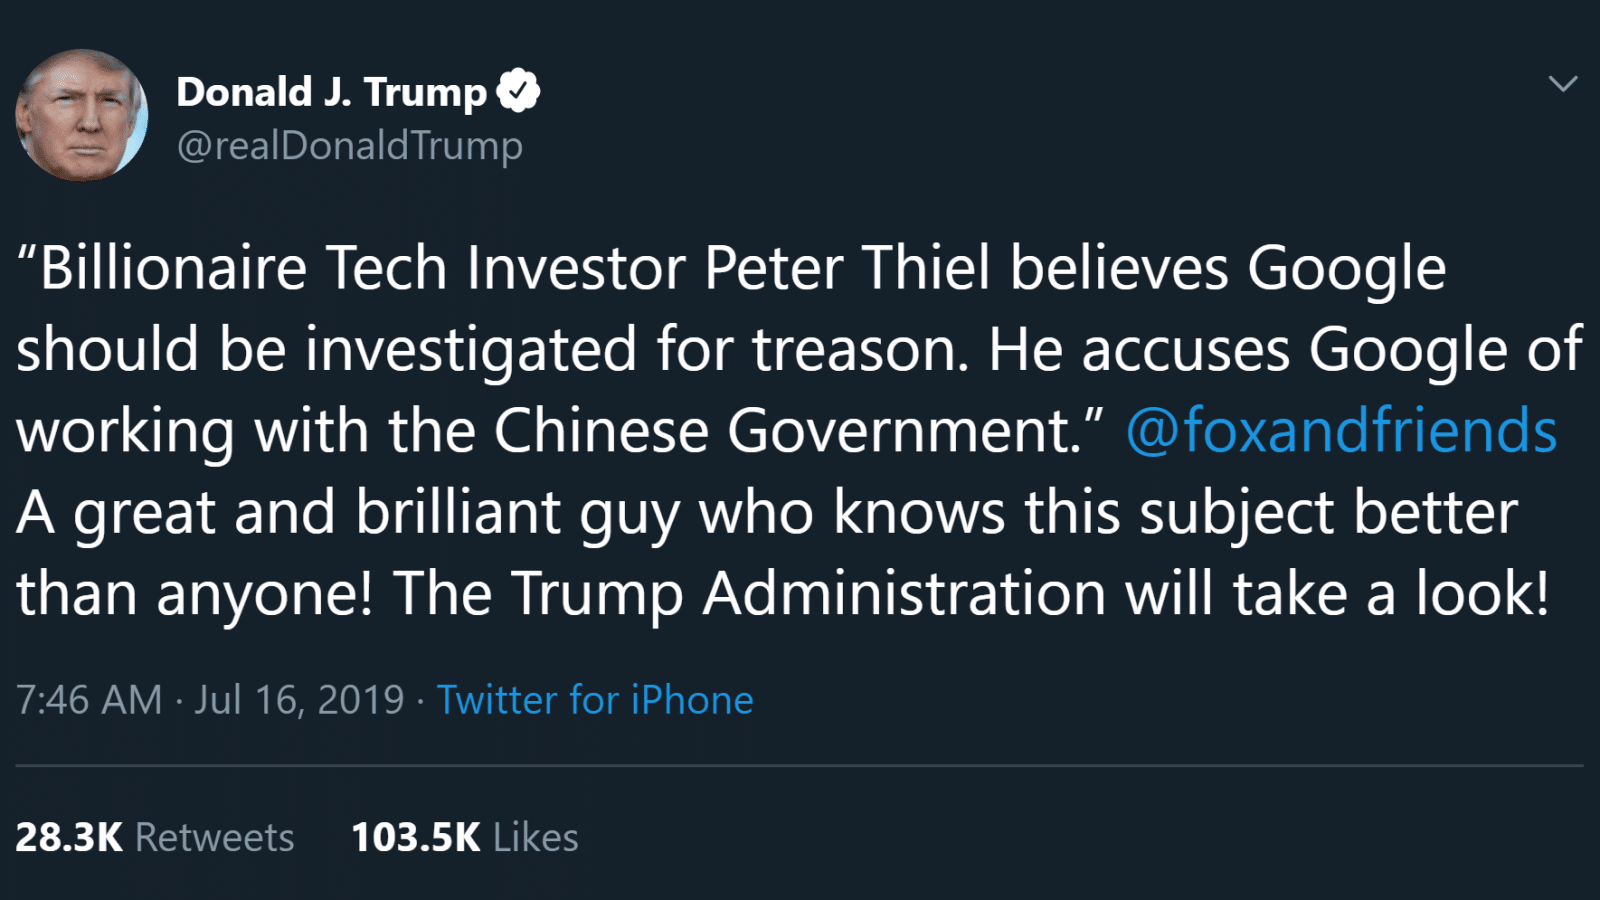 donald trump twitter post about google